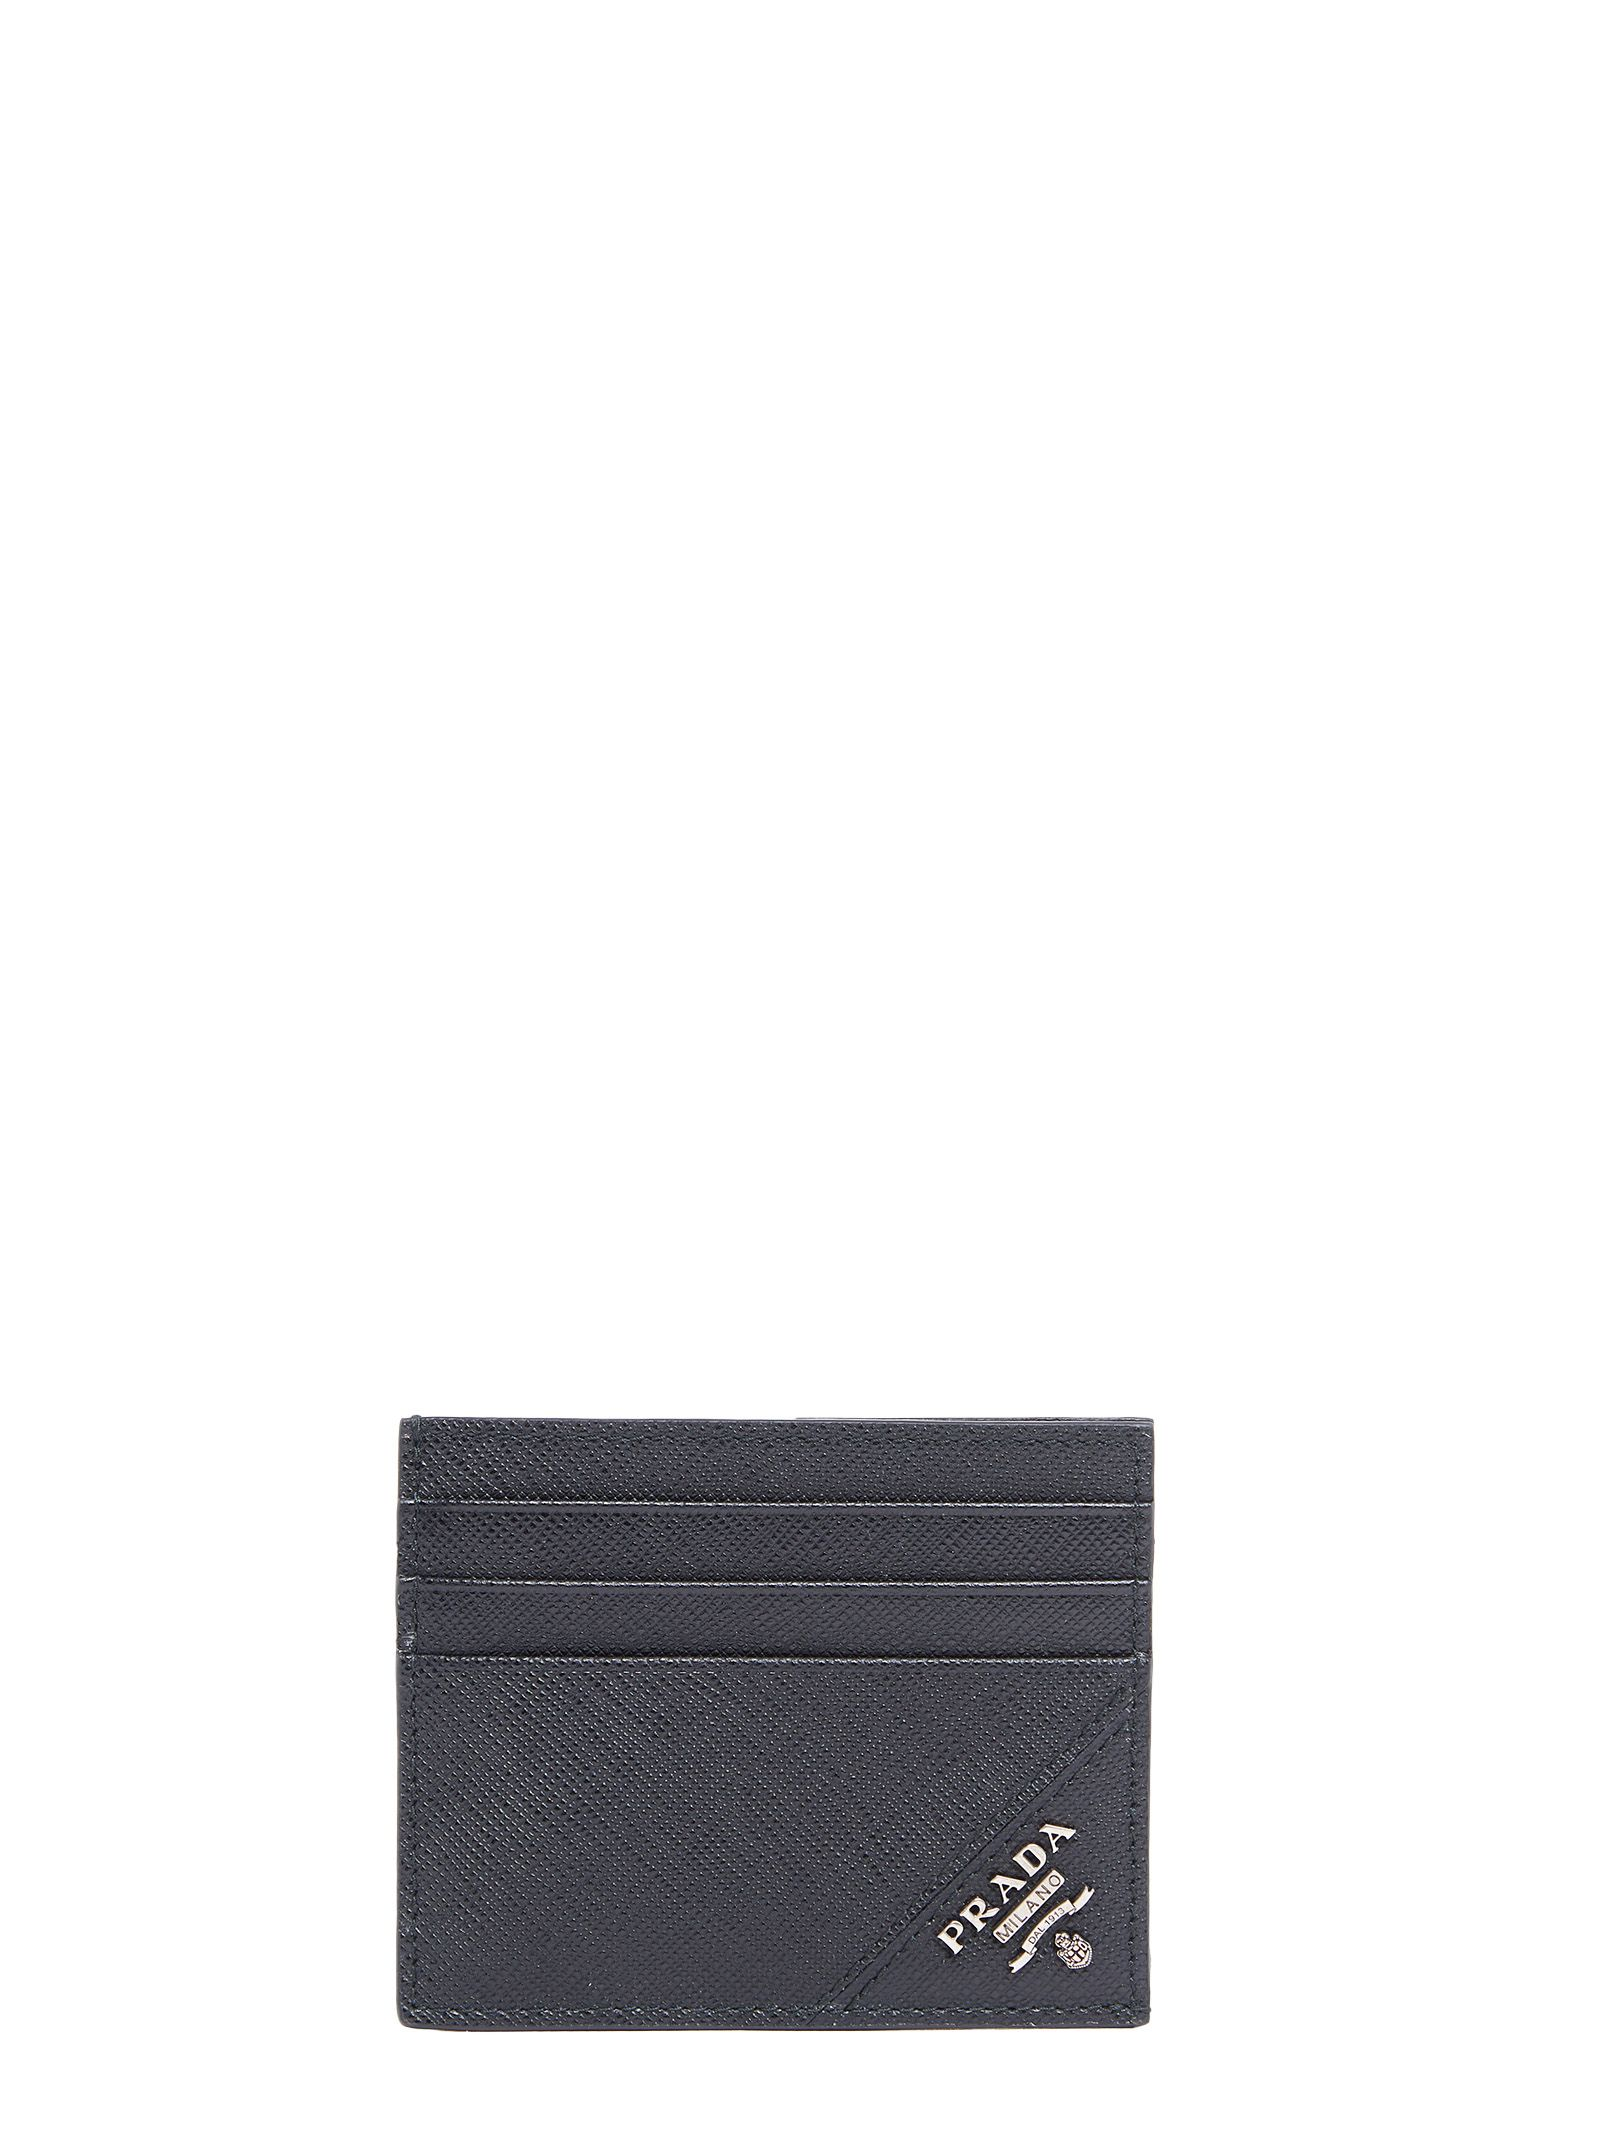 7d6c65829ee9 Prada Cartilio Saffiano Leather Card Holder In Black | ModeSens